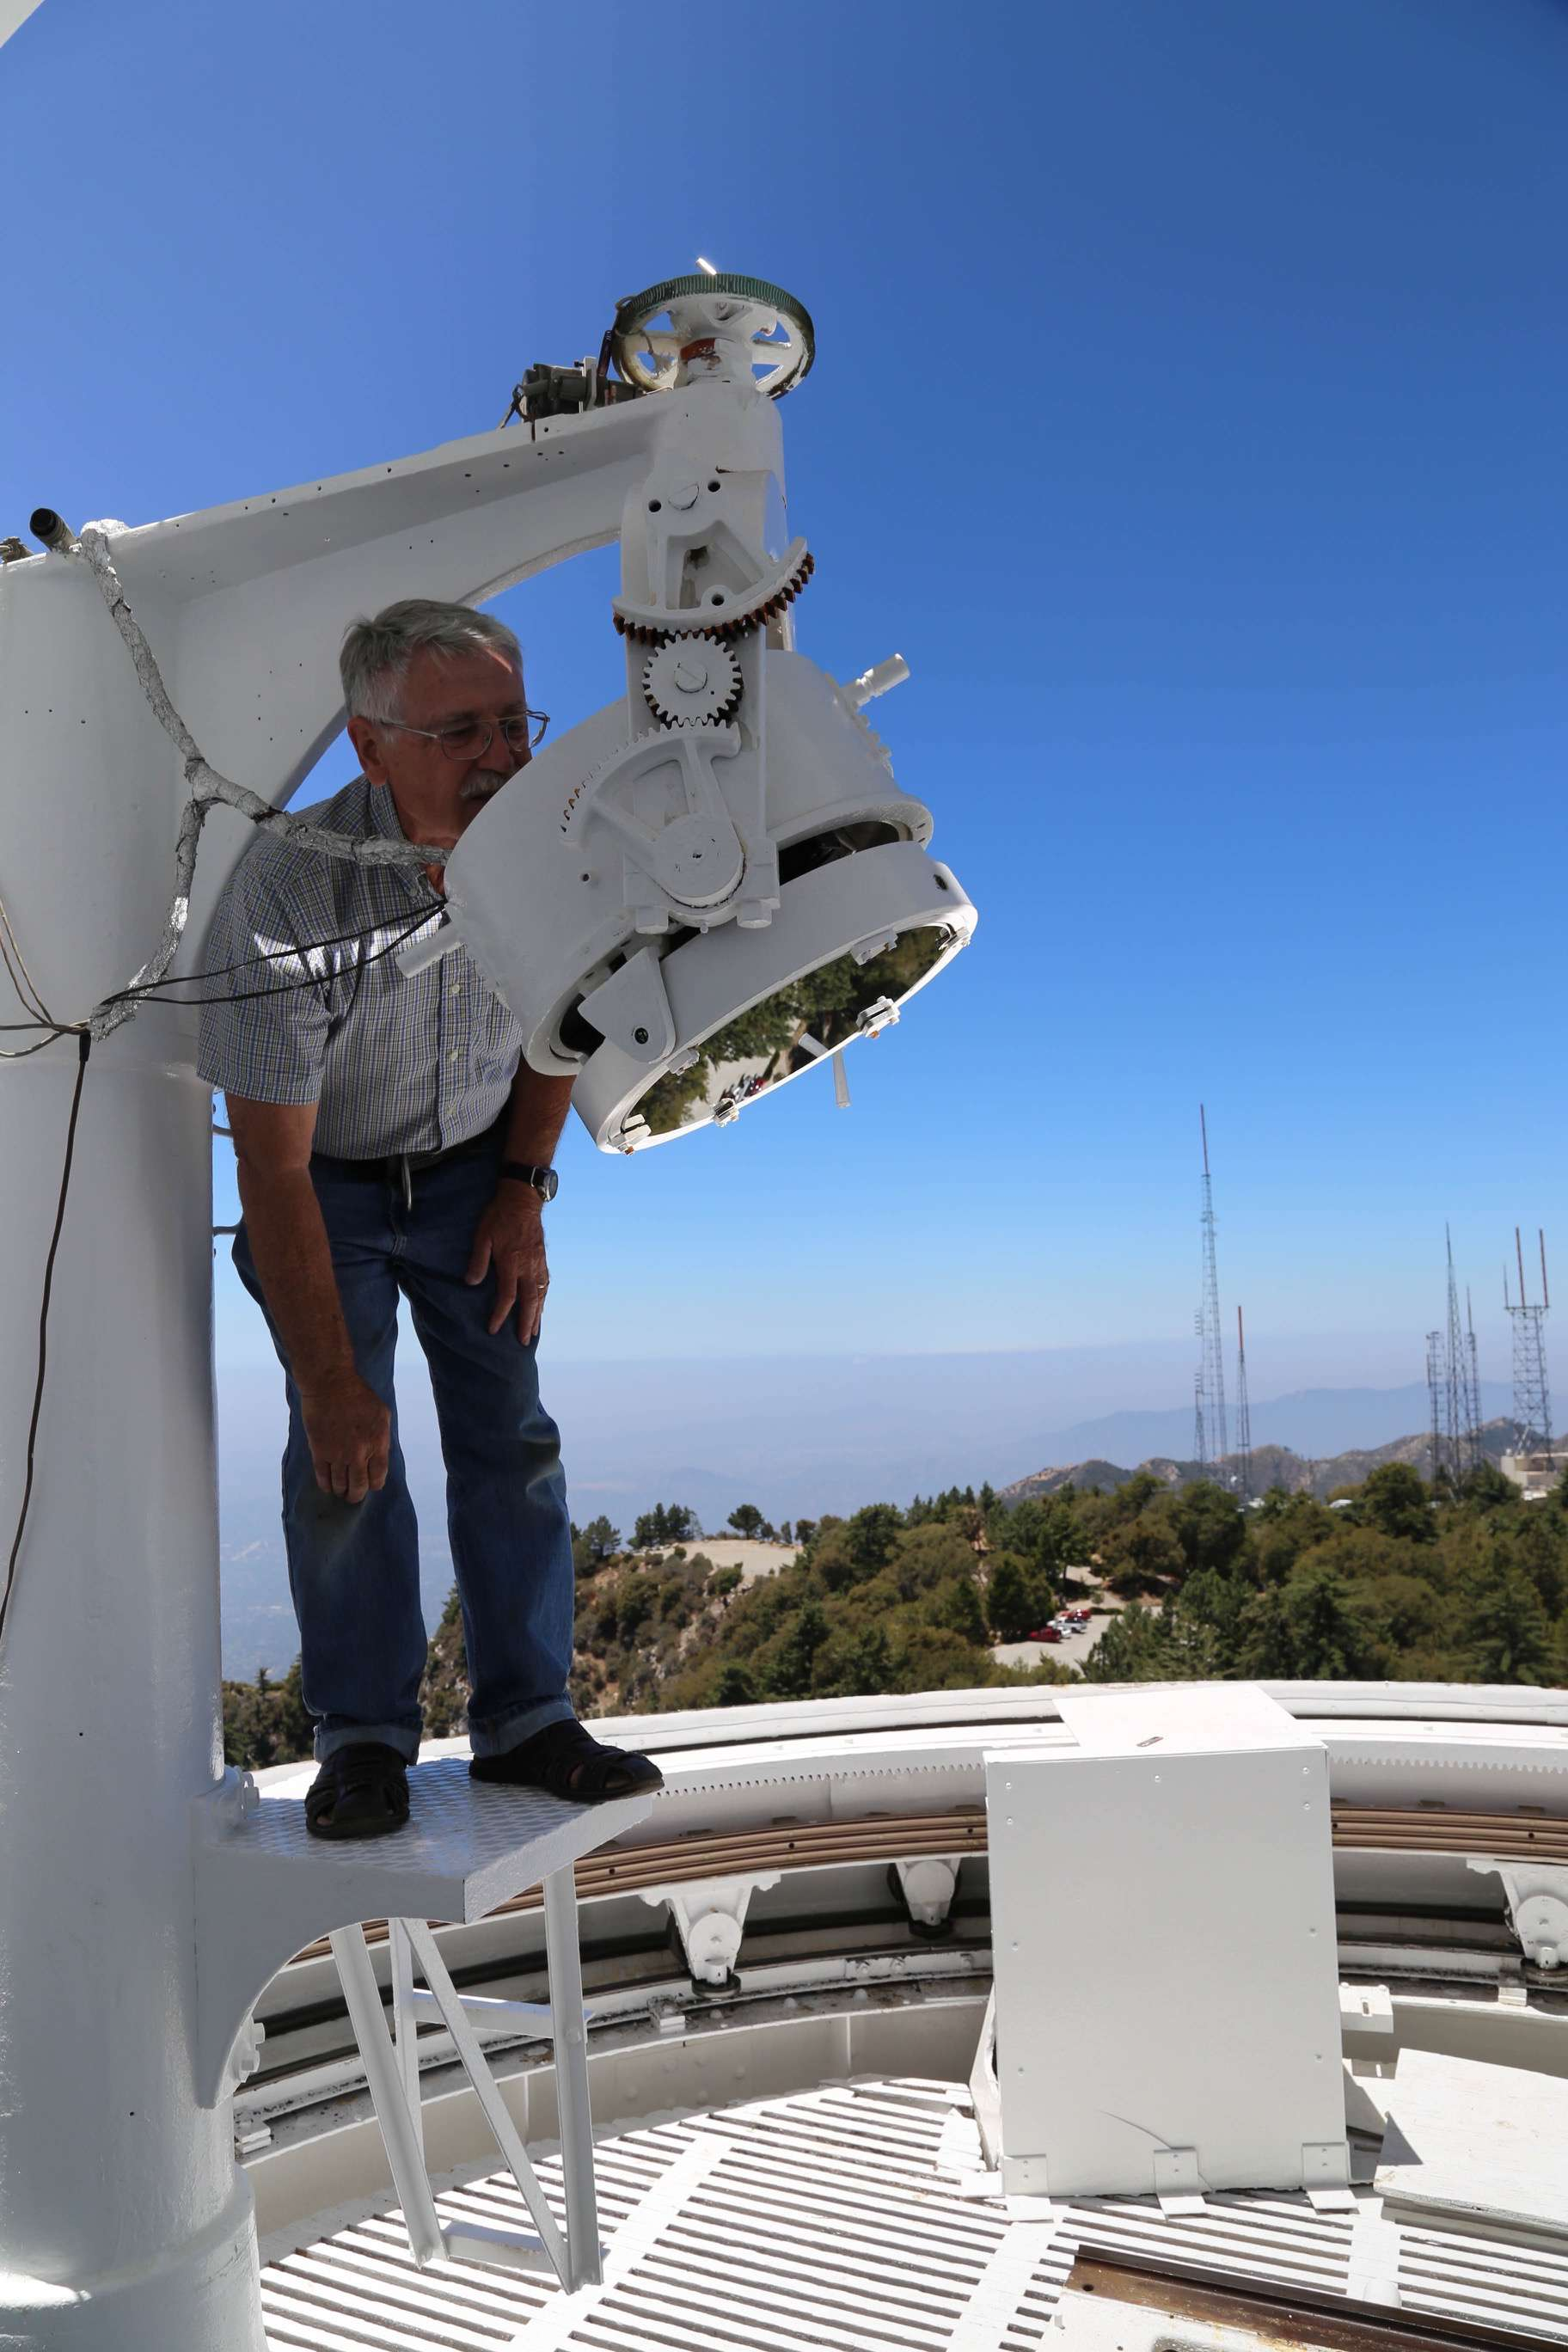 One last look at adjusting the upper mirror on the 150-foot solar observatory and researchers are good to go.